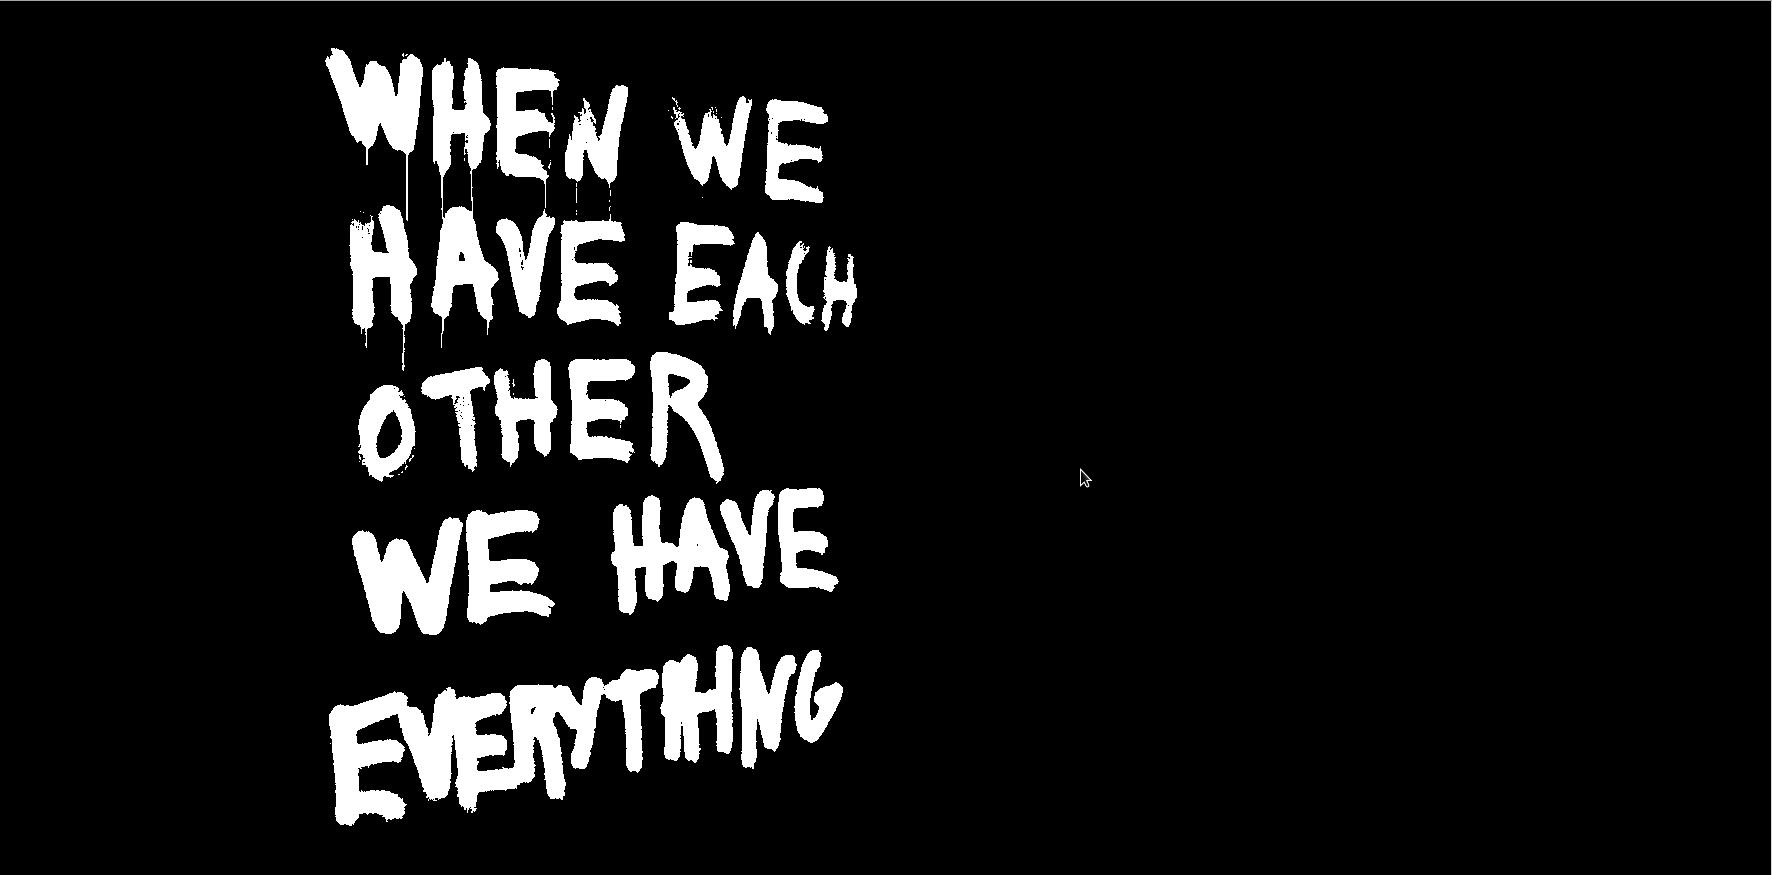 """The words """"WHEN WE HAVE EACH OTHER WE HAVE EVERYTHING"""" appear in white drippy, graffiti-like text against a black background. A very small computer cursor hovers in the middle of the image."""